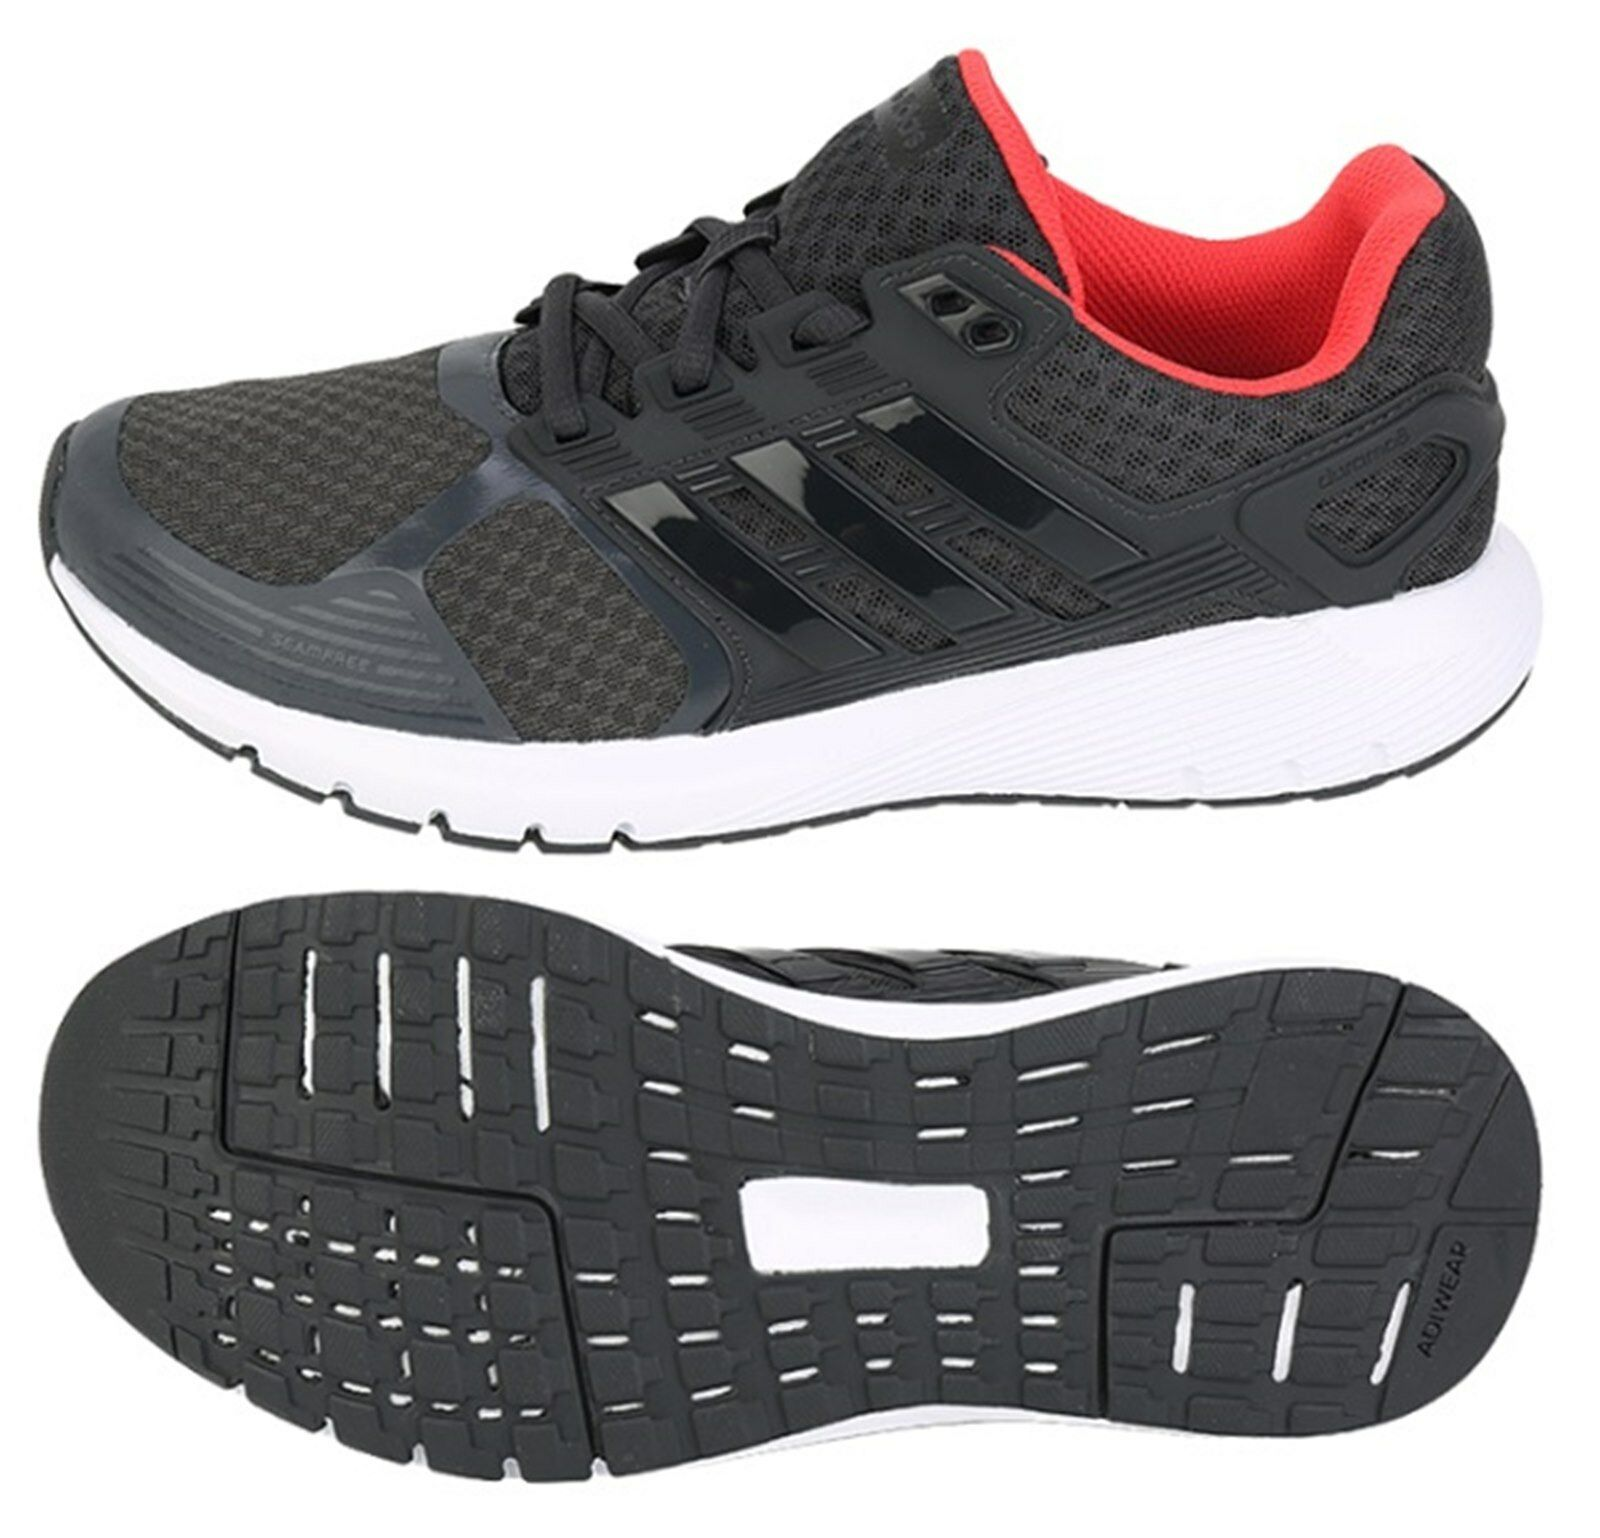 Adidas Women Duramo 8 Training shoes Running Charcoal Yoga Sneakers shoes CP8750